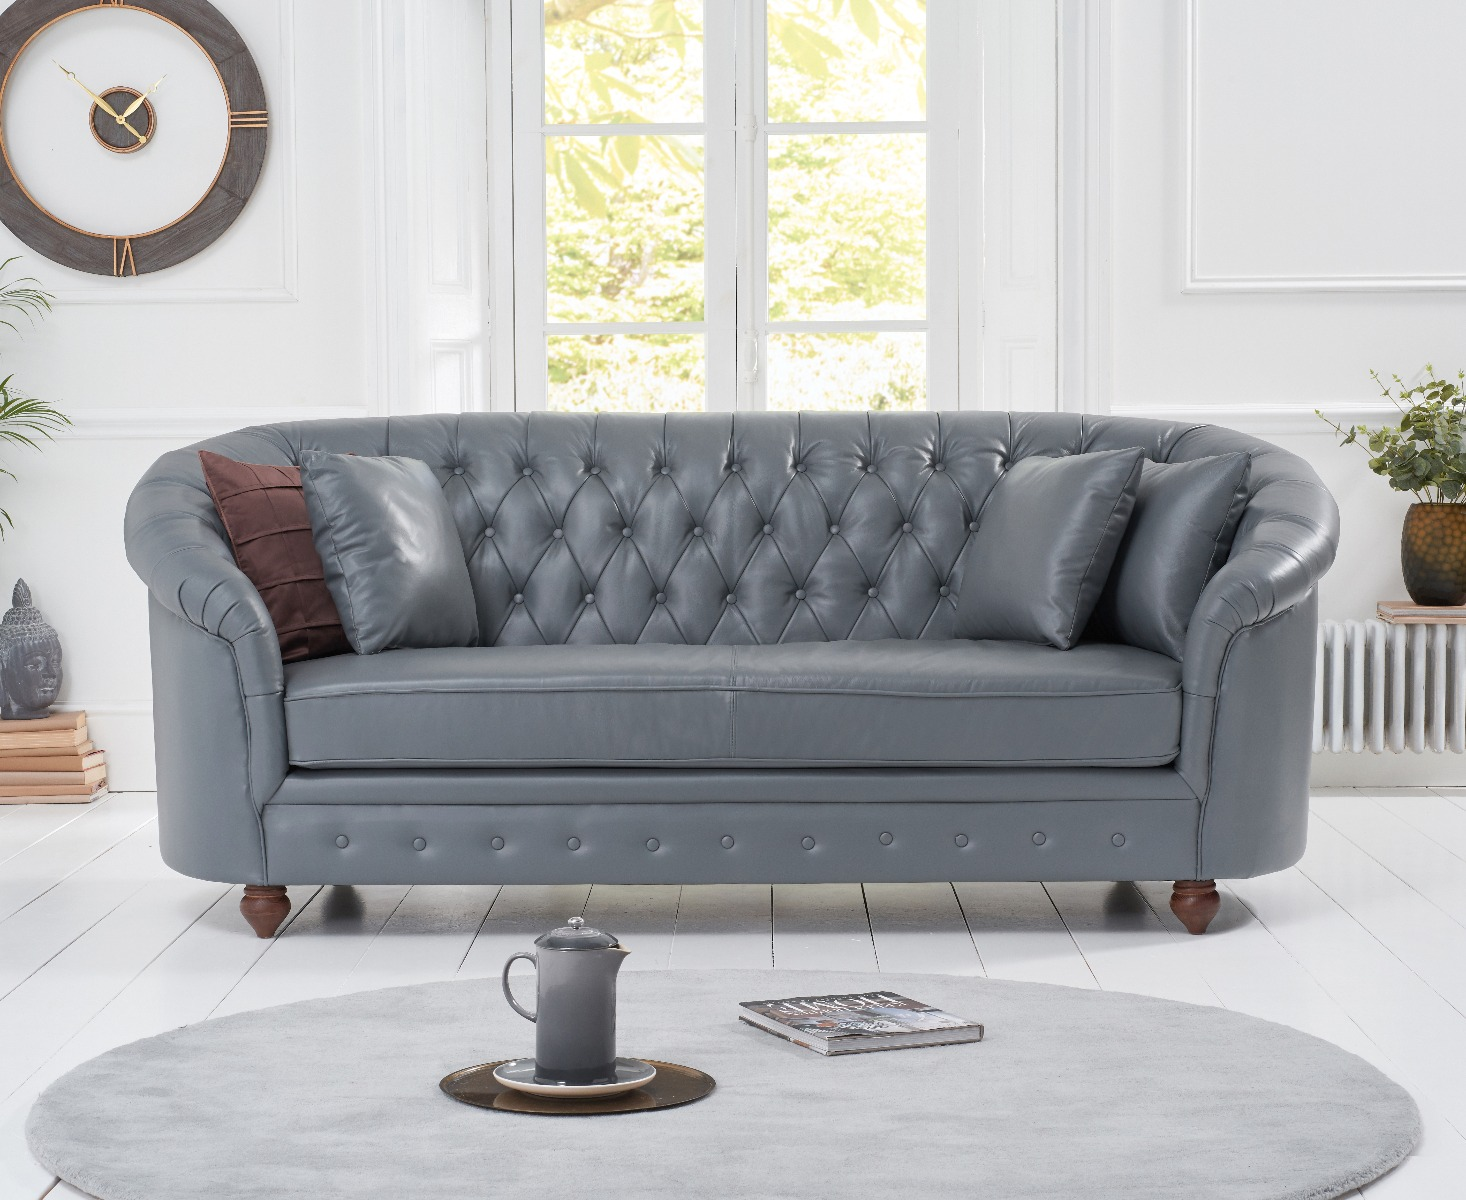 An image of Chloe Grey Leather 3 Seater Sofa